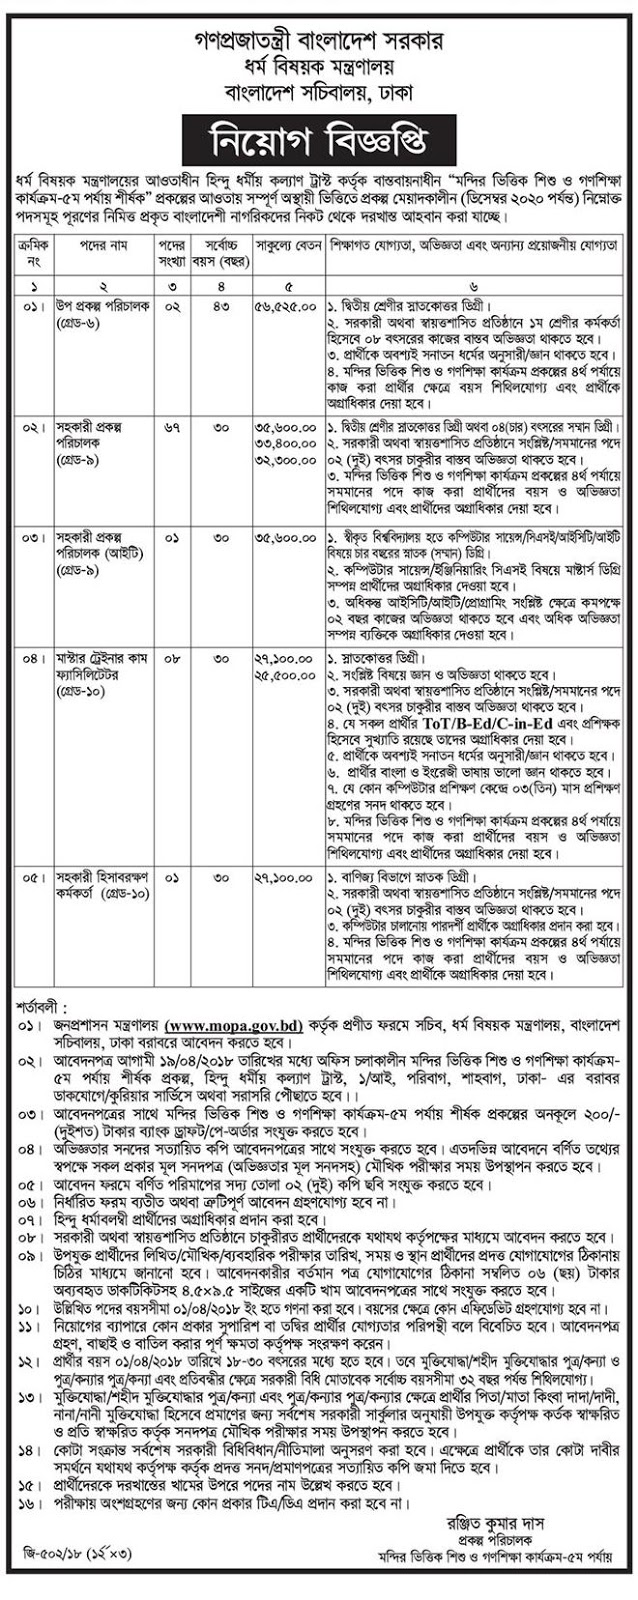 Ministry of Religious Affairs (MORA) Job Circular 2018